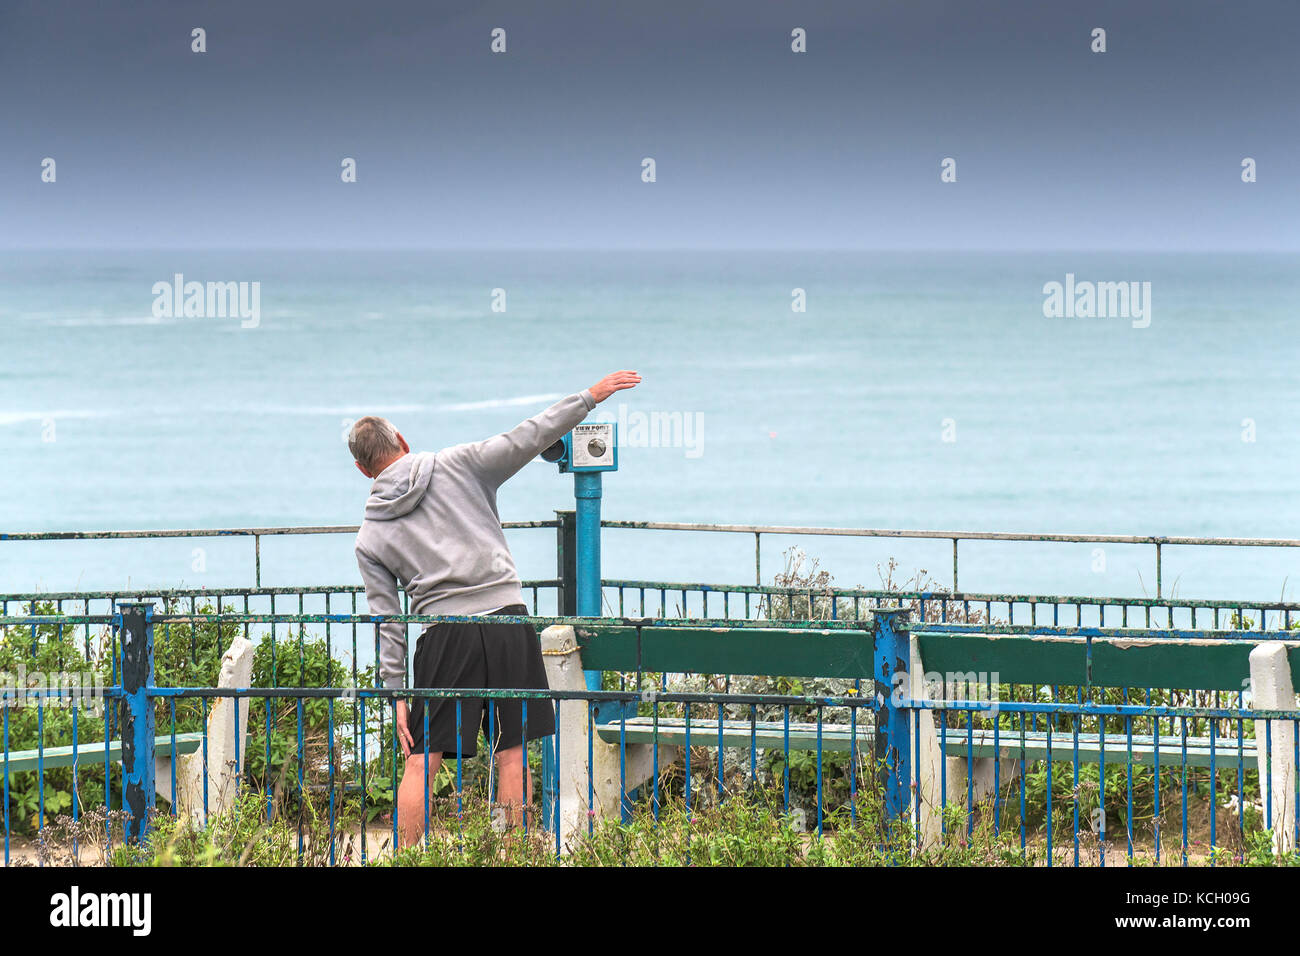 Early morning workout - a man exercising in a seating area overlooking the sea in Cornwall. - Stock Image